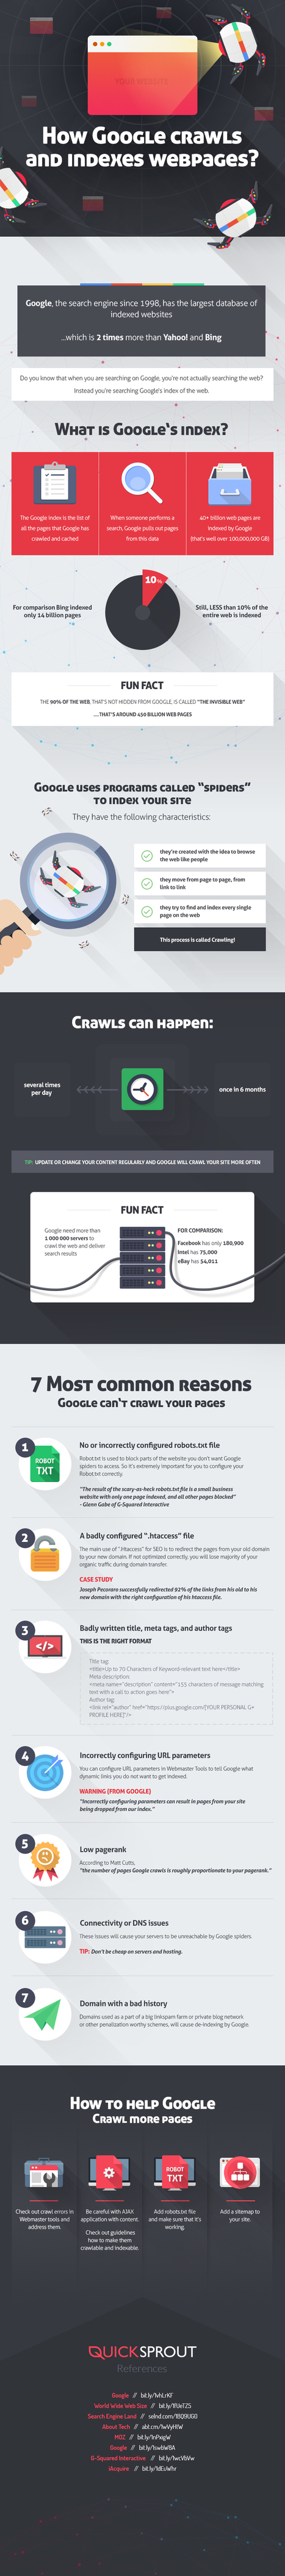 How Google Crawls and Indexes Web Pages | Digital and Social Media Marketing | Scoop.it